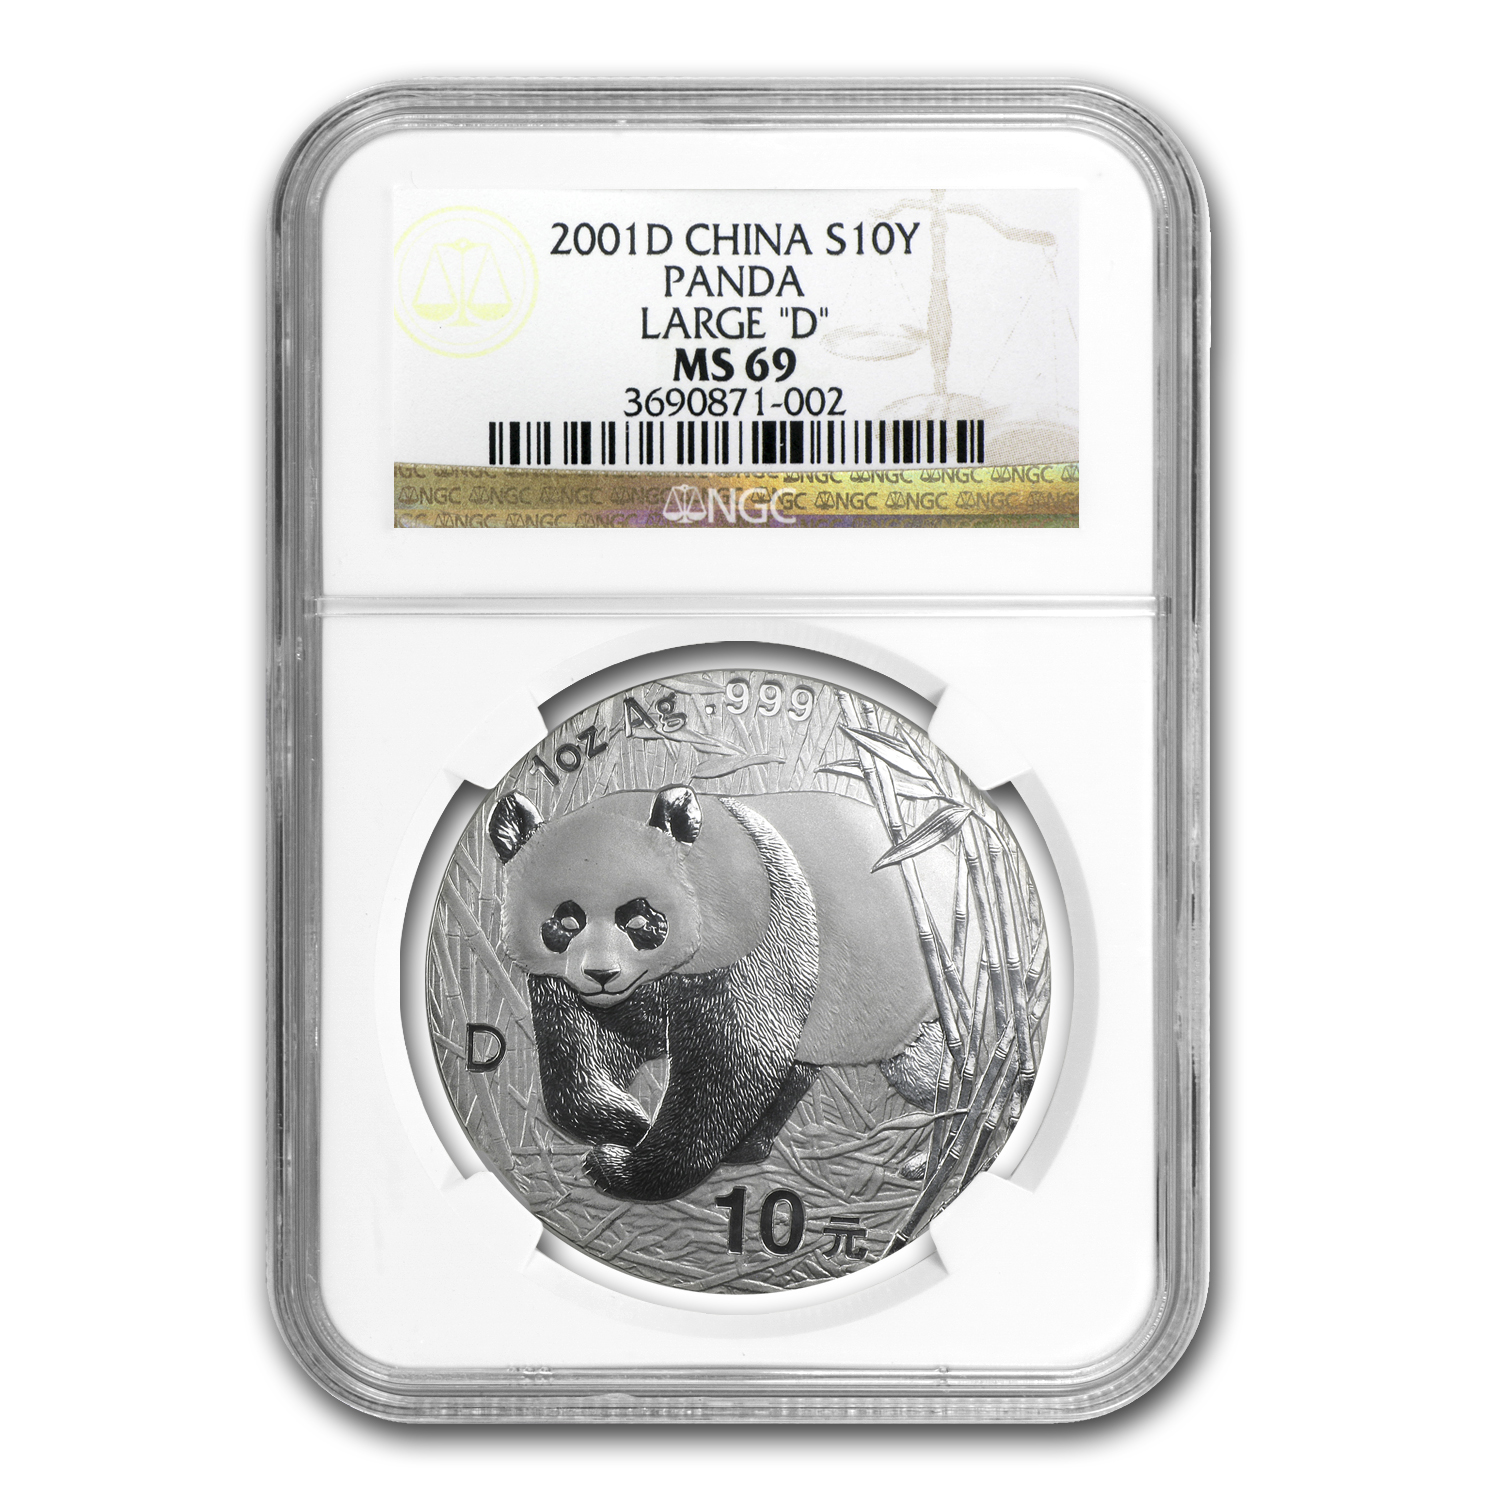 2001-D China 1 oz Silver Panda MS-69 NGC (Large D)